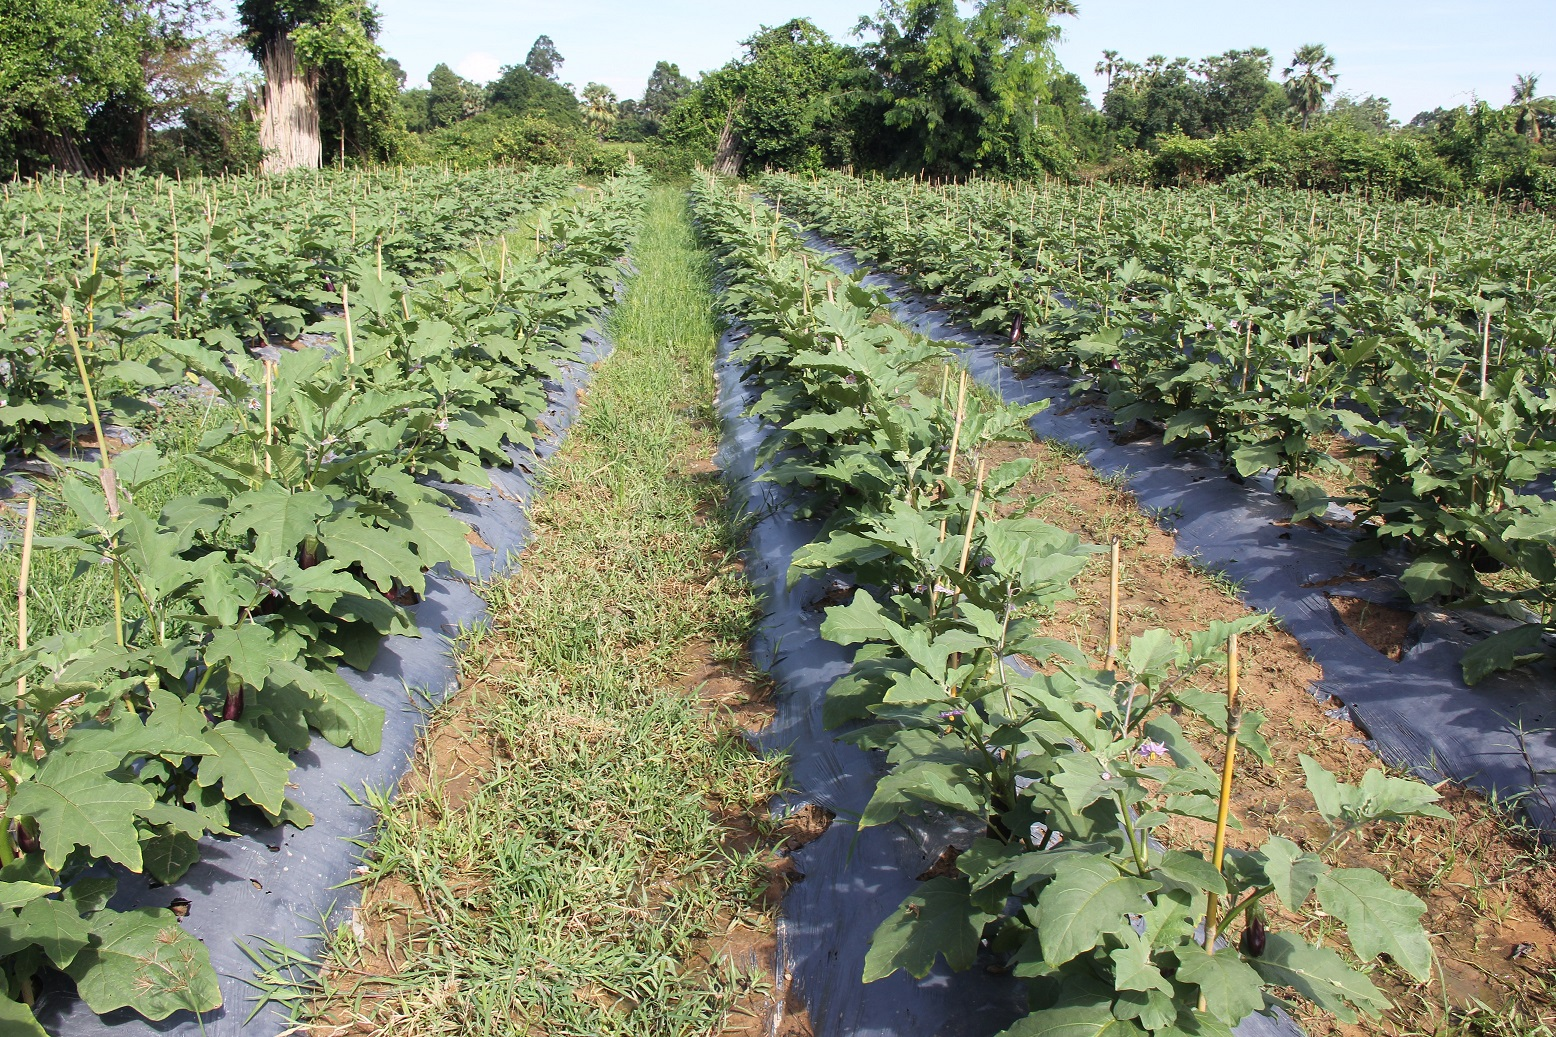 Eggplants cultivation by using plastic mulches and set the drip irrigation on the row under the plastic.